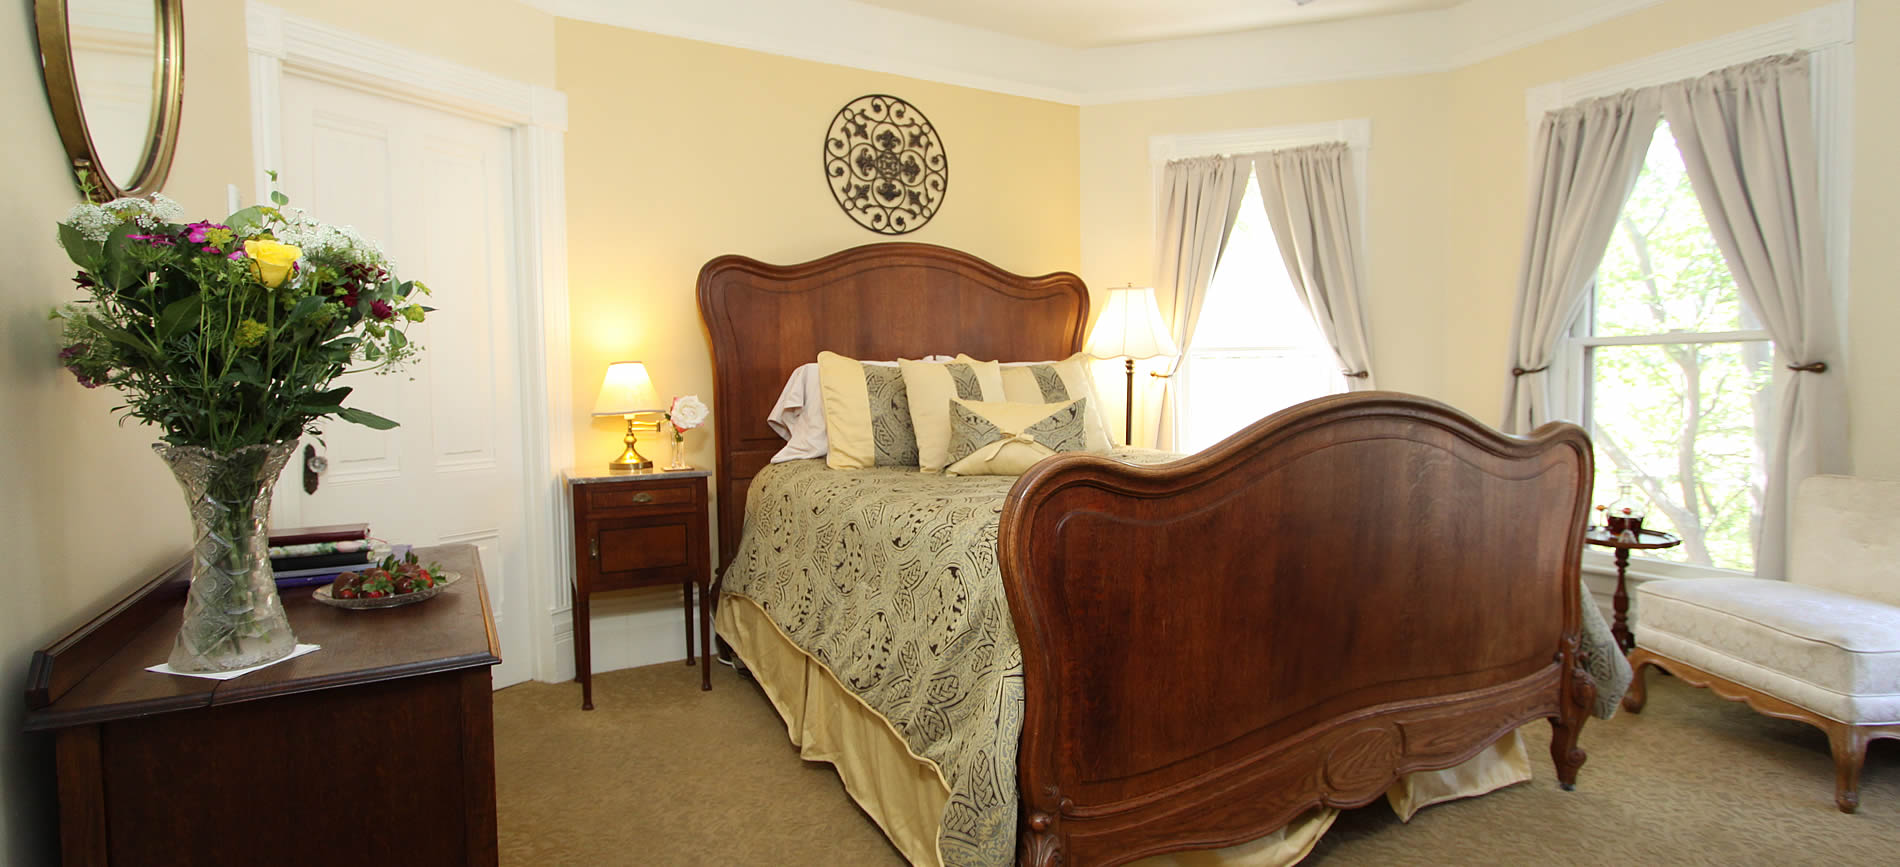 dream sweet guest room with bed and dresser